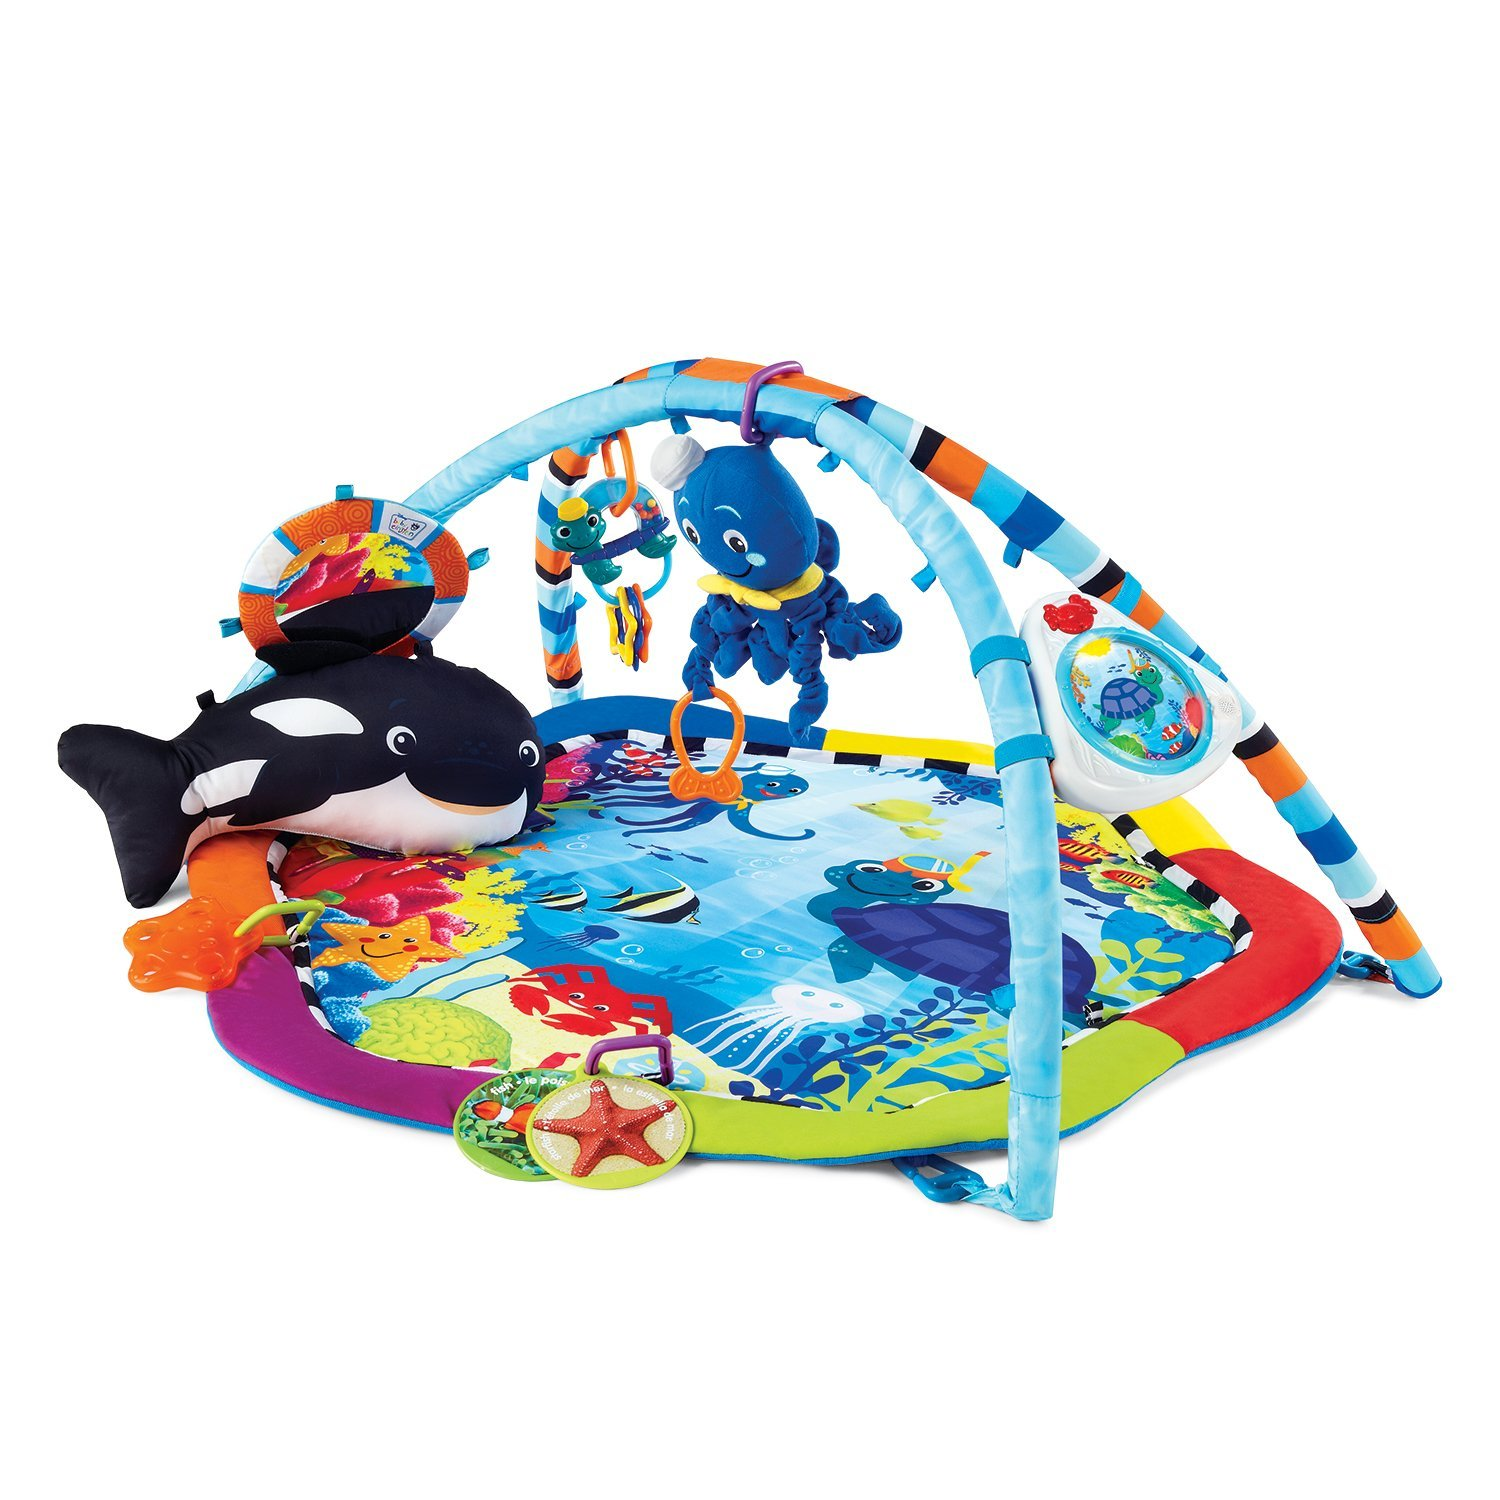 Baby Einstein Neptune Ocean Adventure Gym Baby Walker